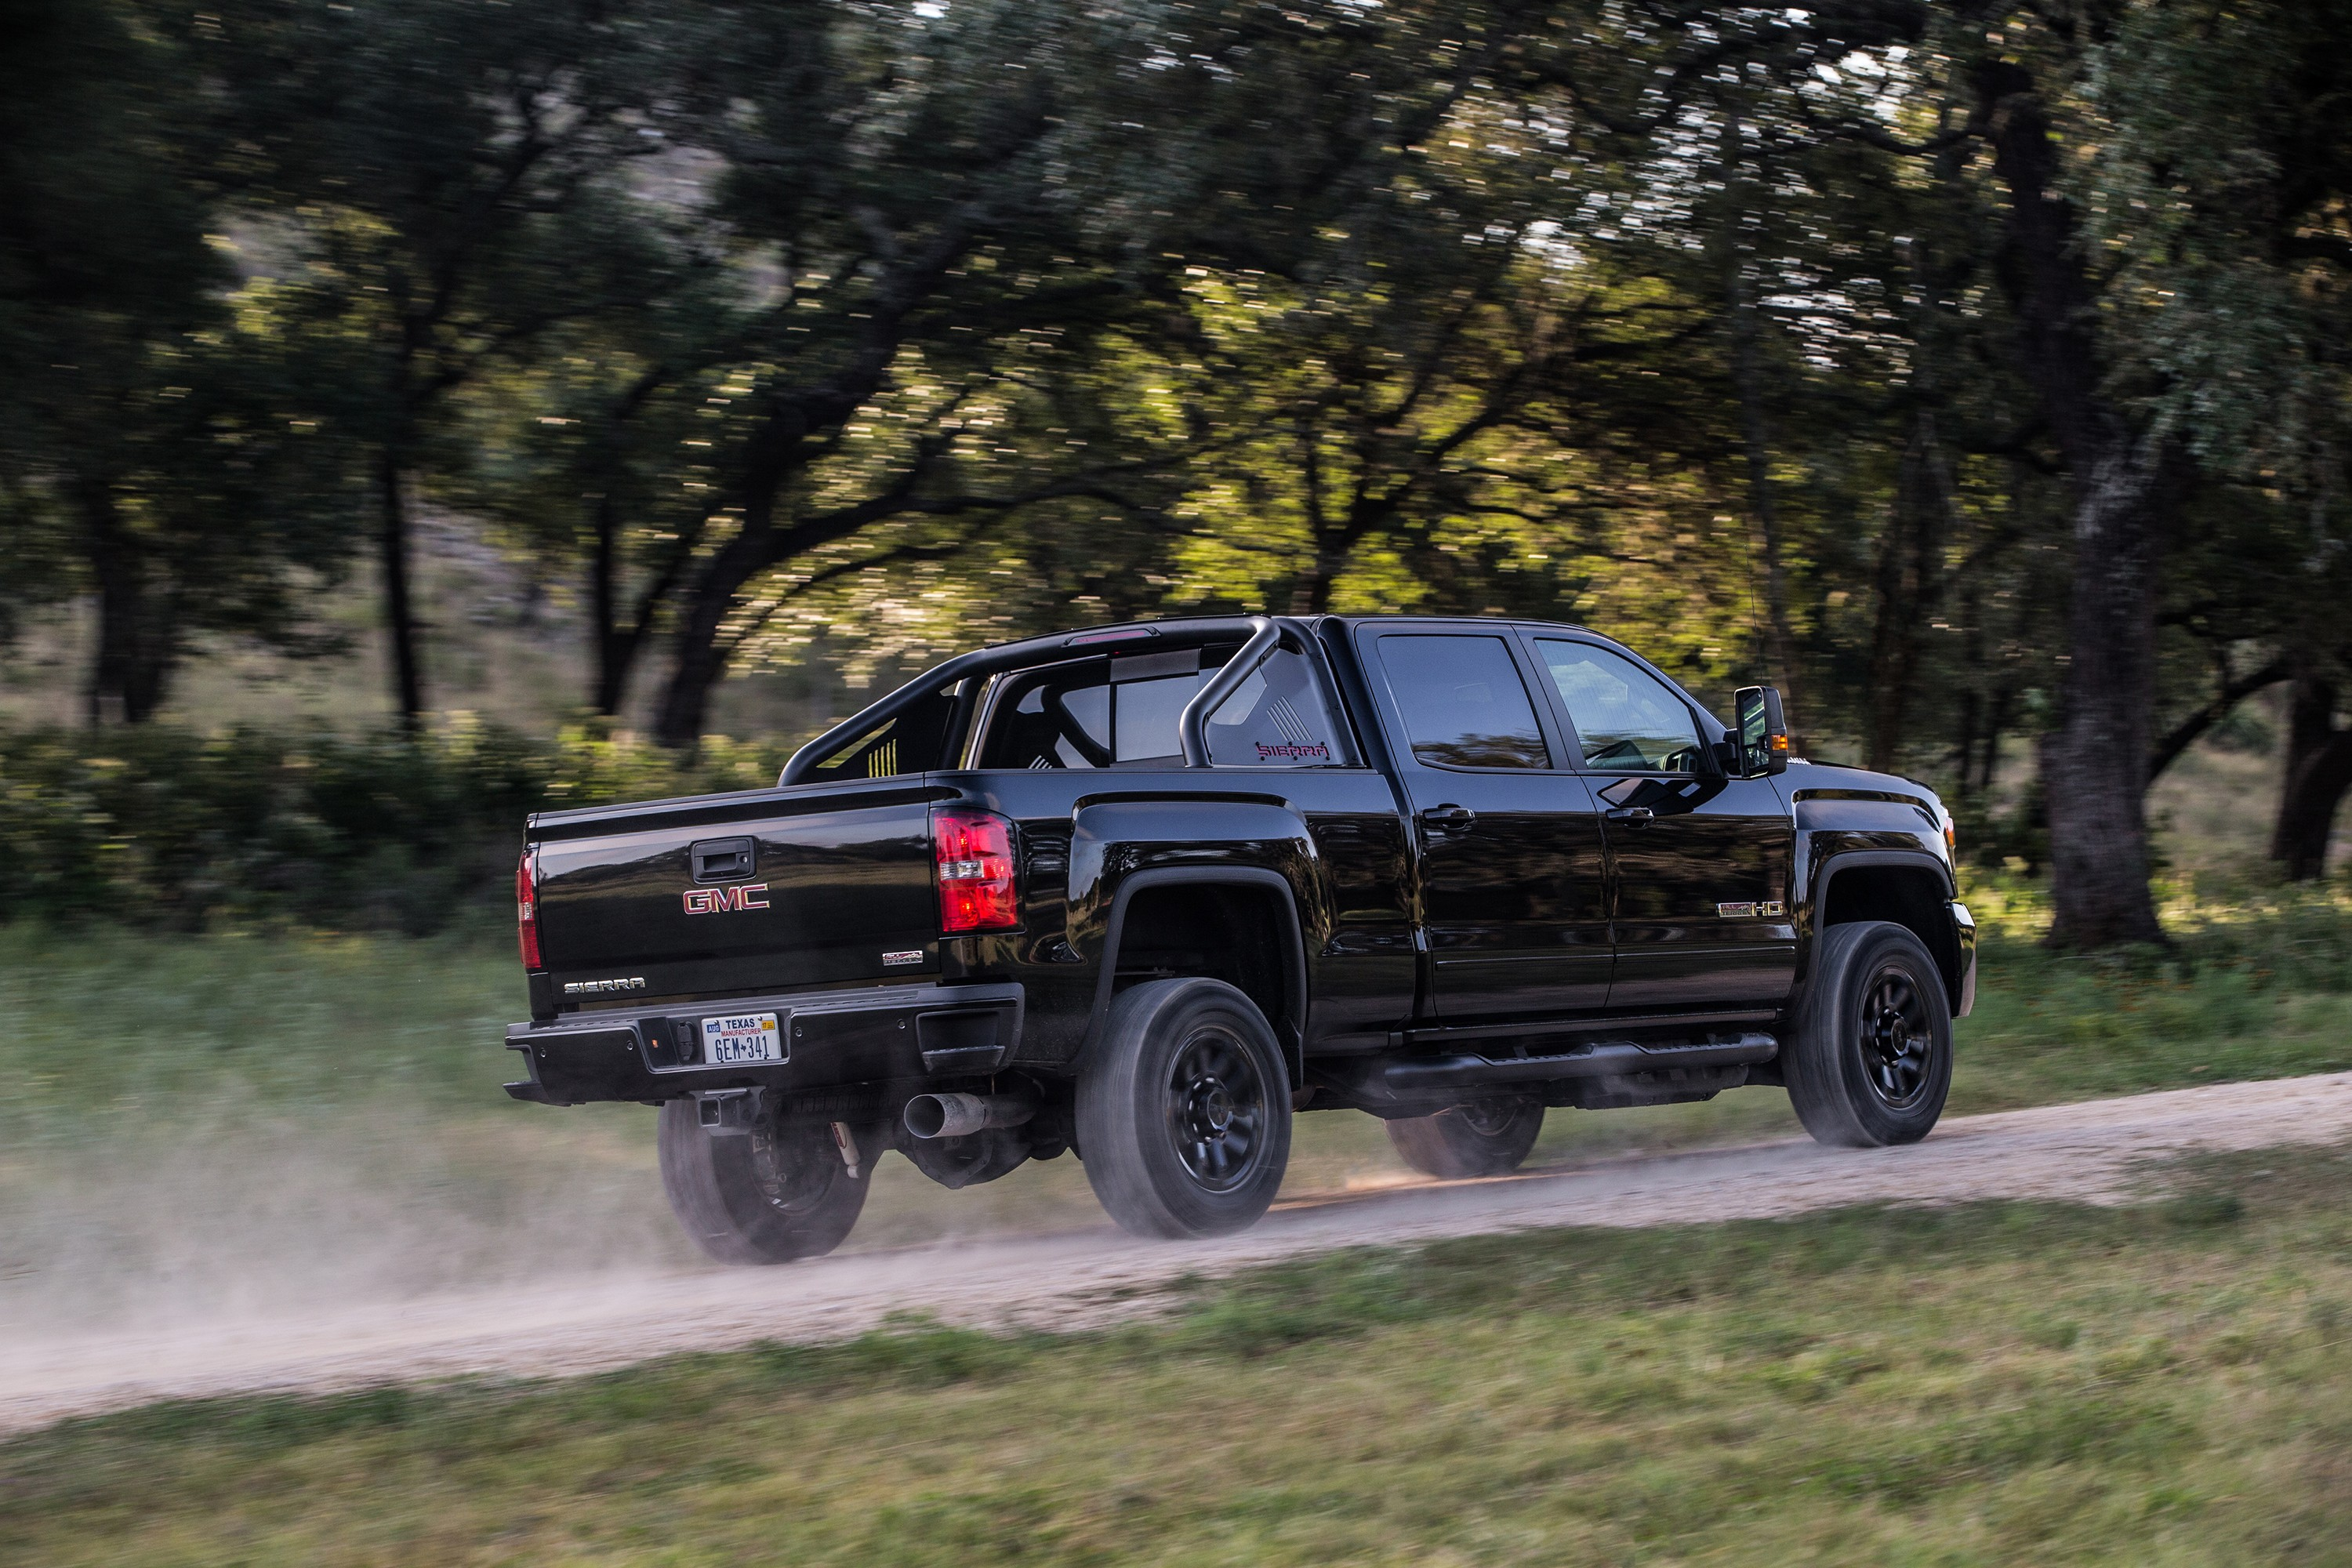 chevy conversion blog all clearance i high hd terrain gm systems by gmc coilover bds system suspension